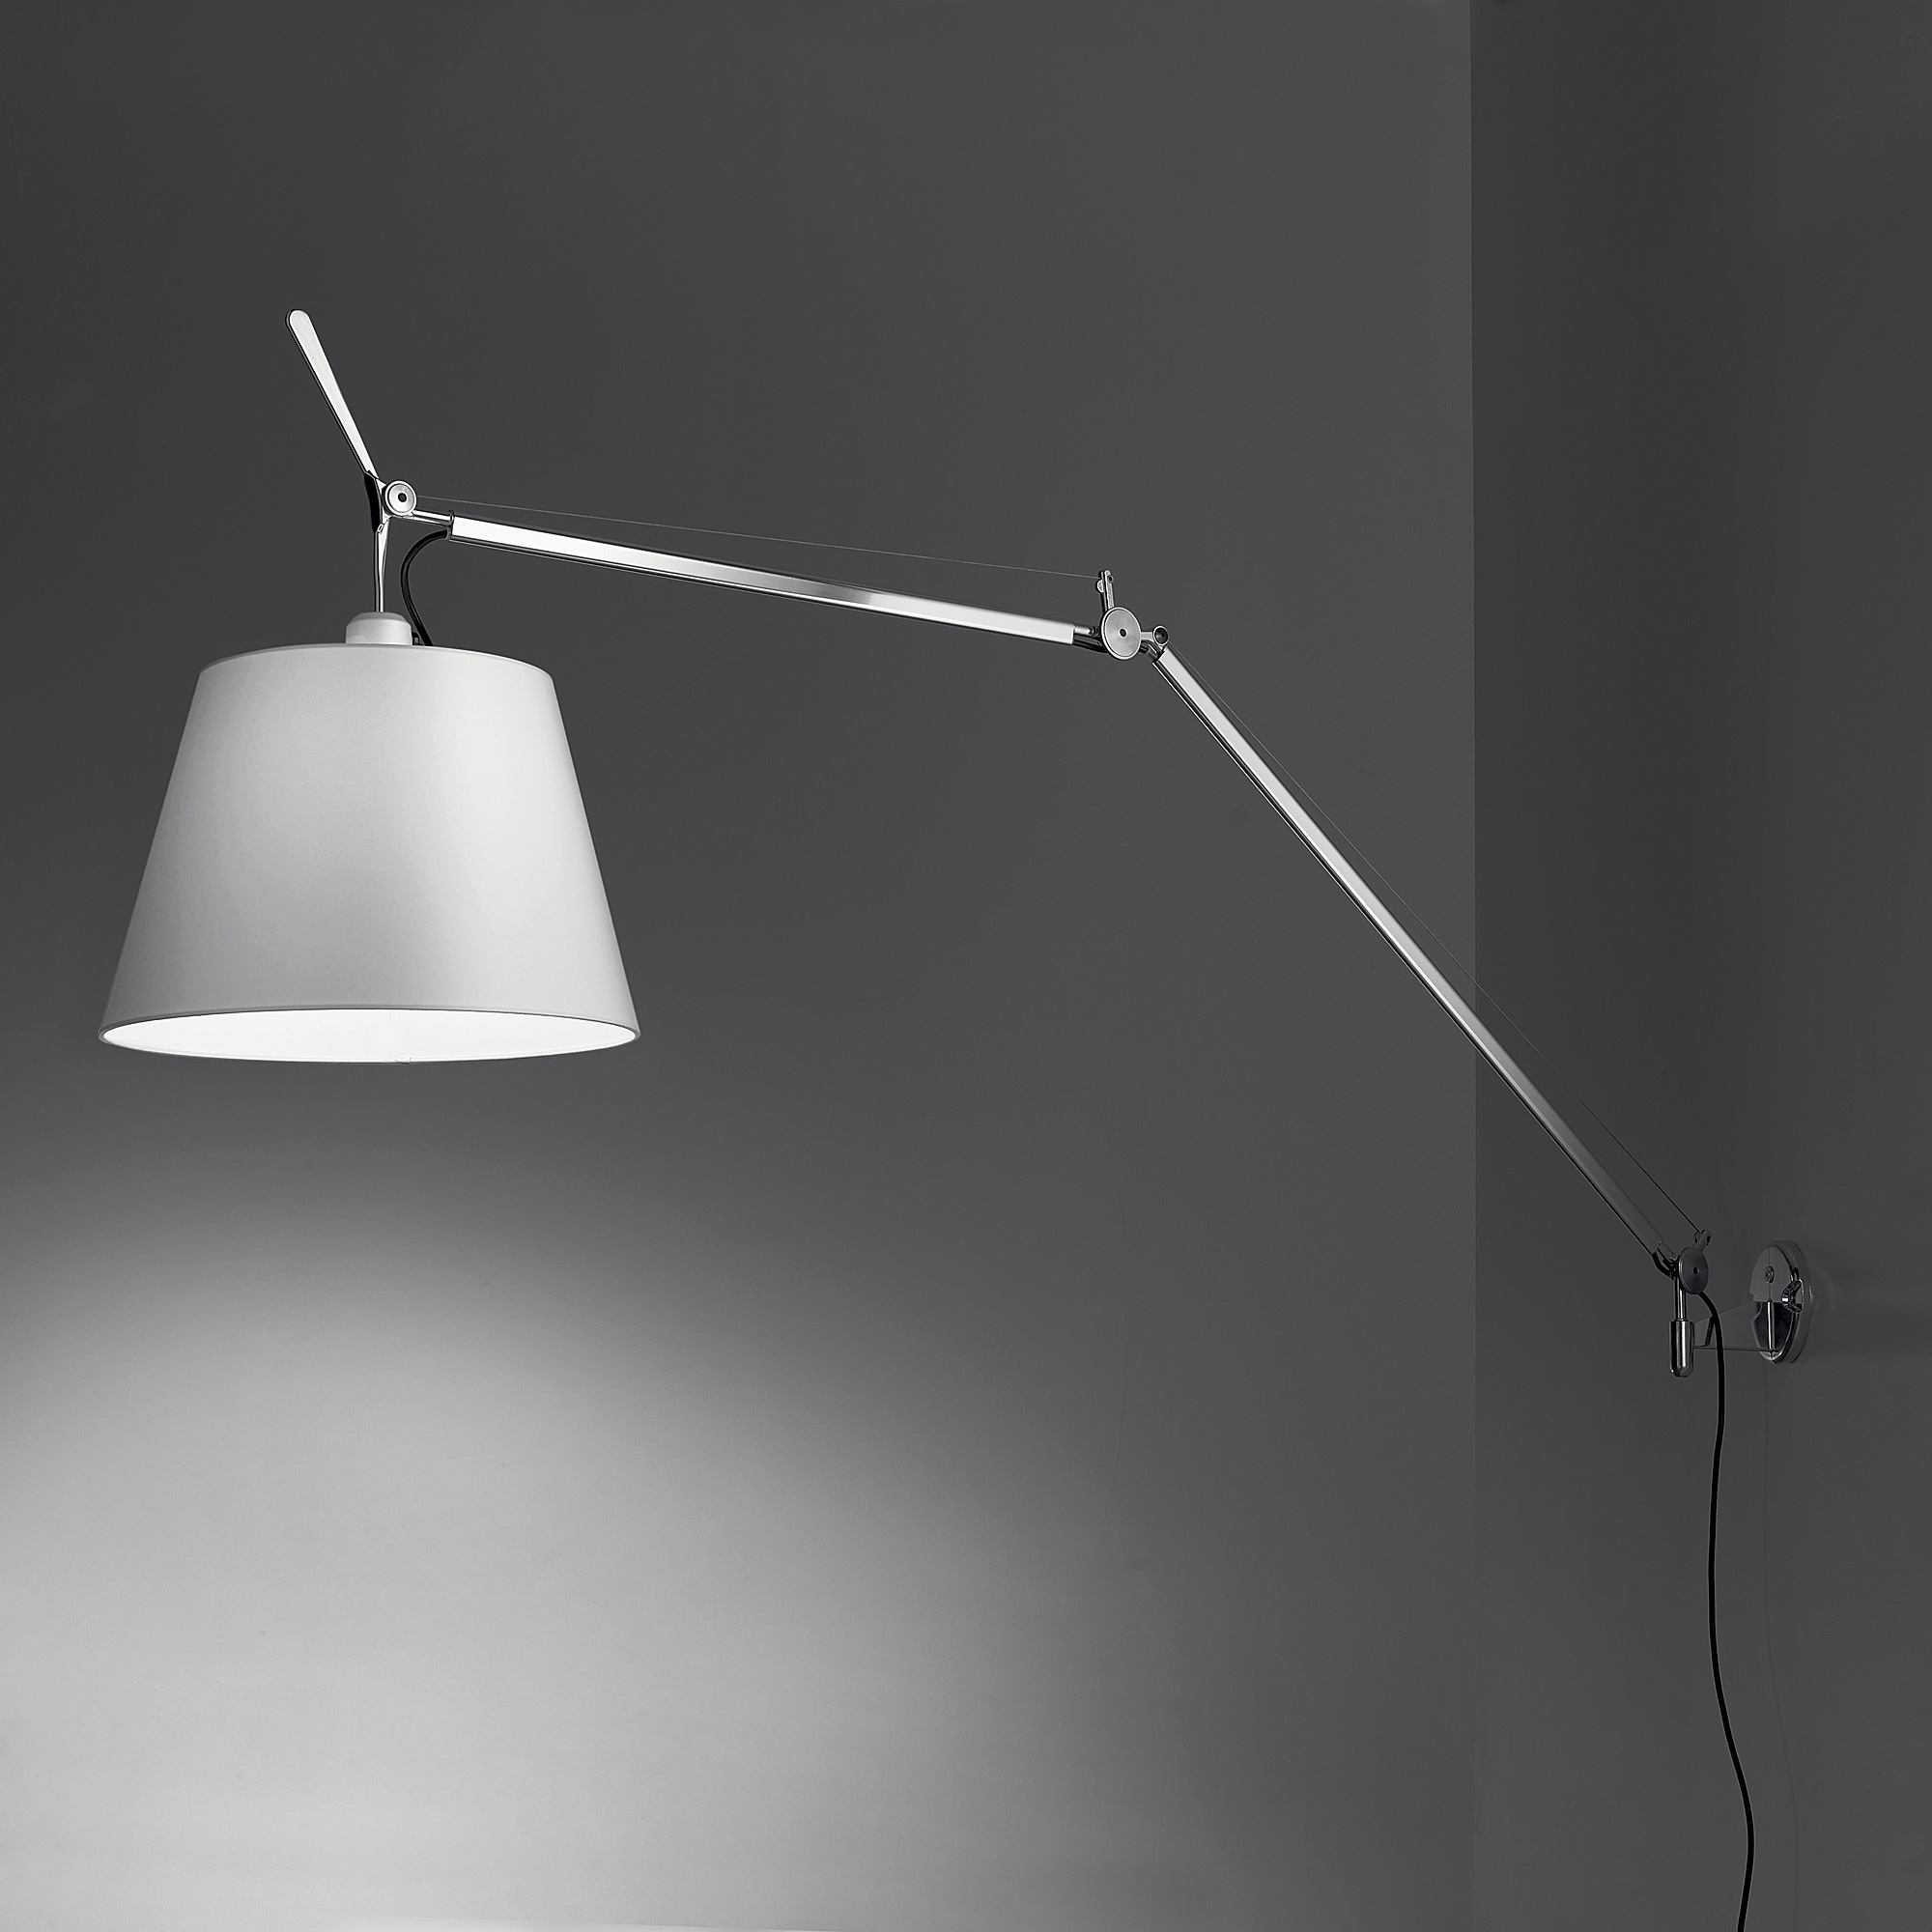 artemide tolomeo mega wandleuchte mit dimmer 0778010a 0563050a 0781030a reuter onlineshop. Black Bedroom Furniture Sets. Home Design Ideas